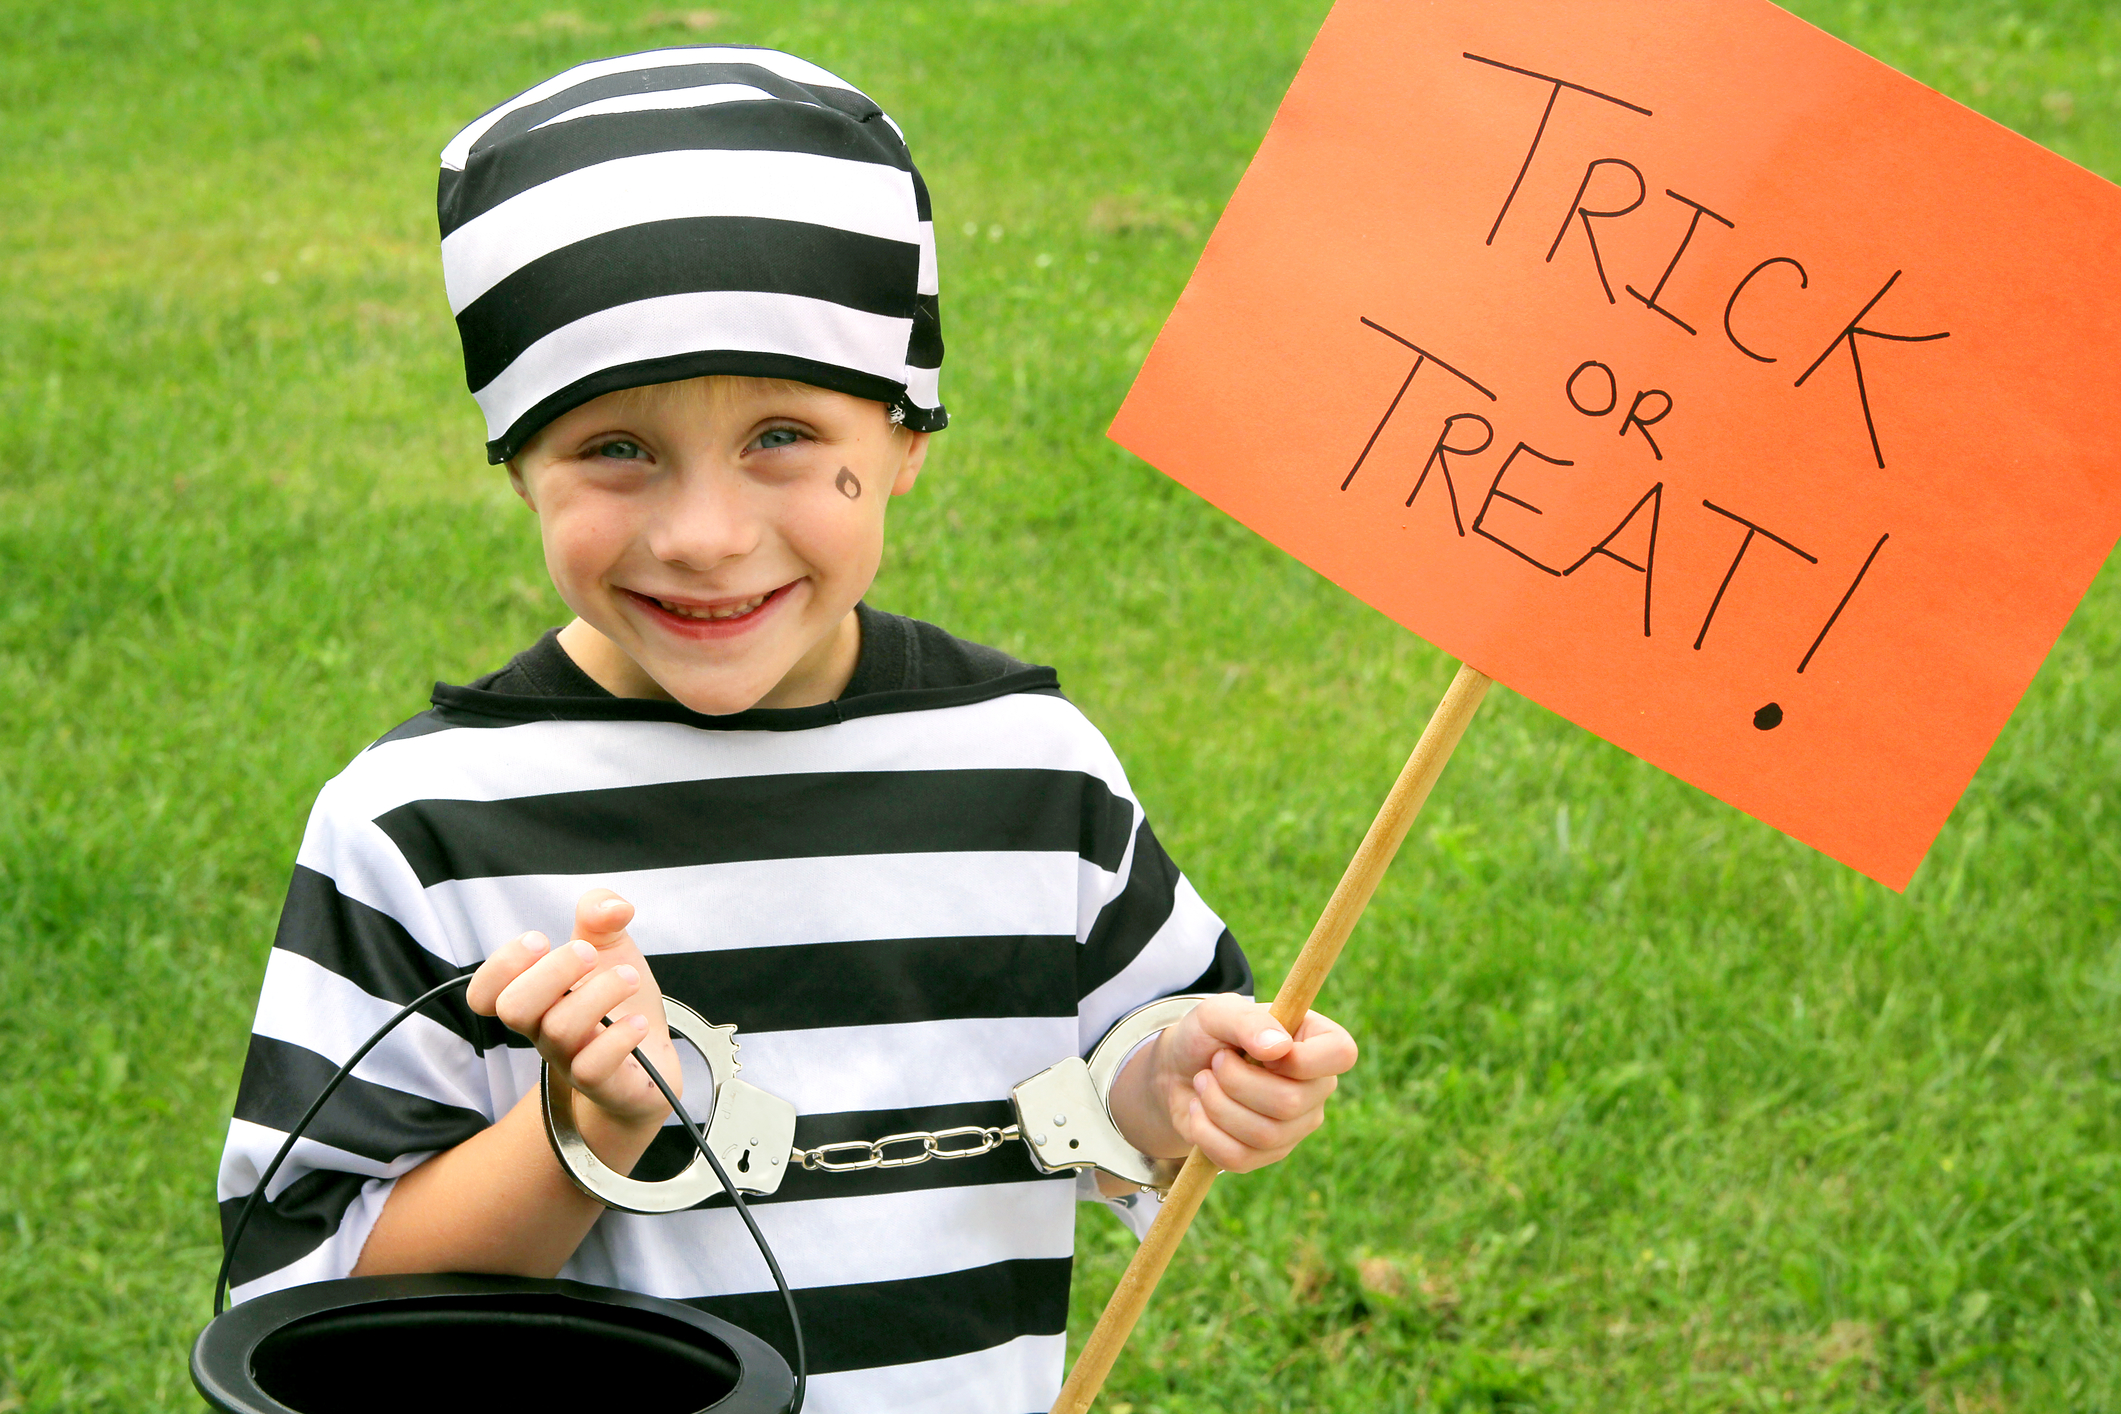 Kids over 12 in the US could face jail time for 'Trick or Treating'